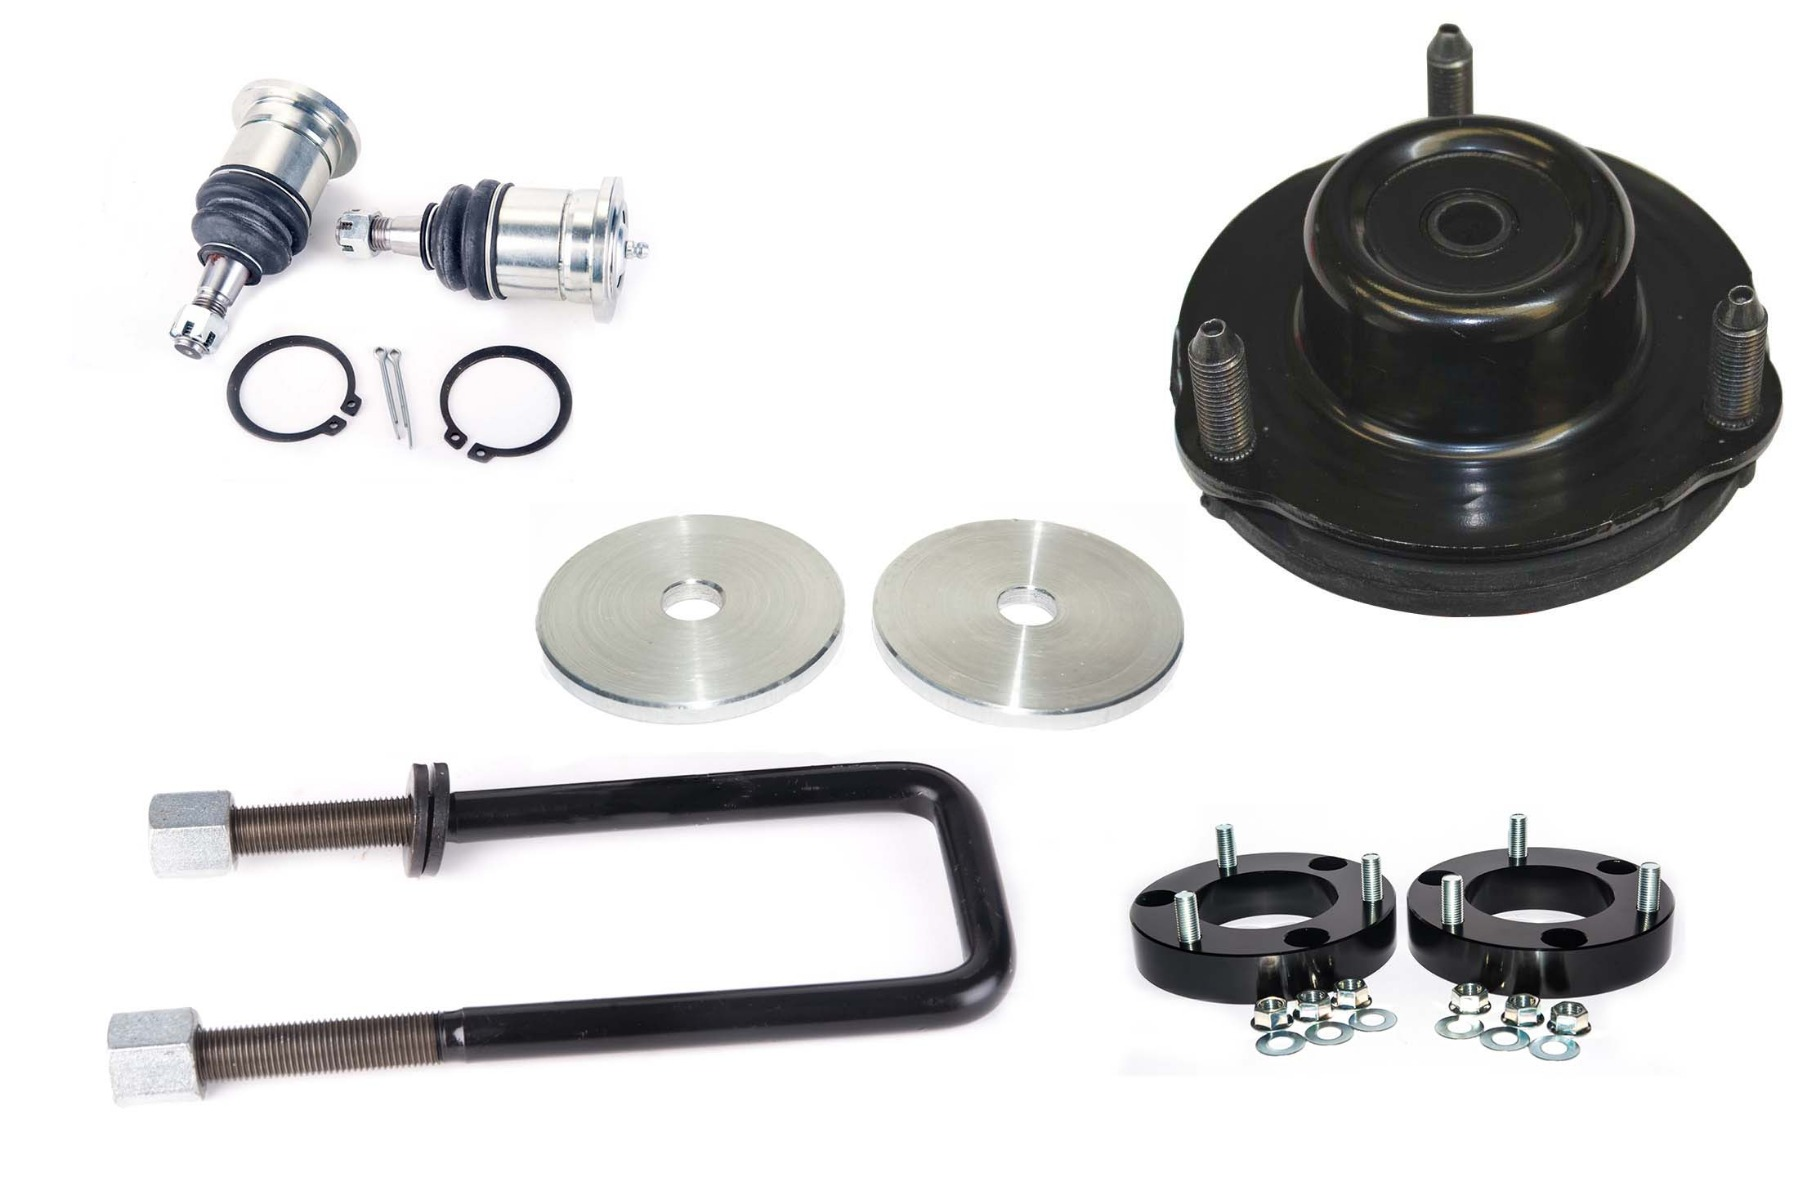 VMN offers other suspension parts and kits you need to ensure you'll have a reliable on and off-road performance for your trip.